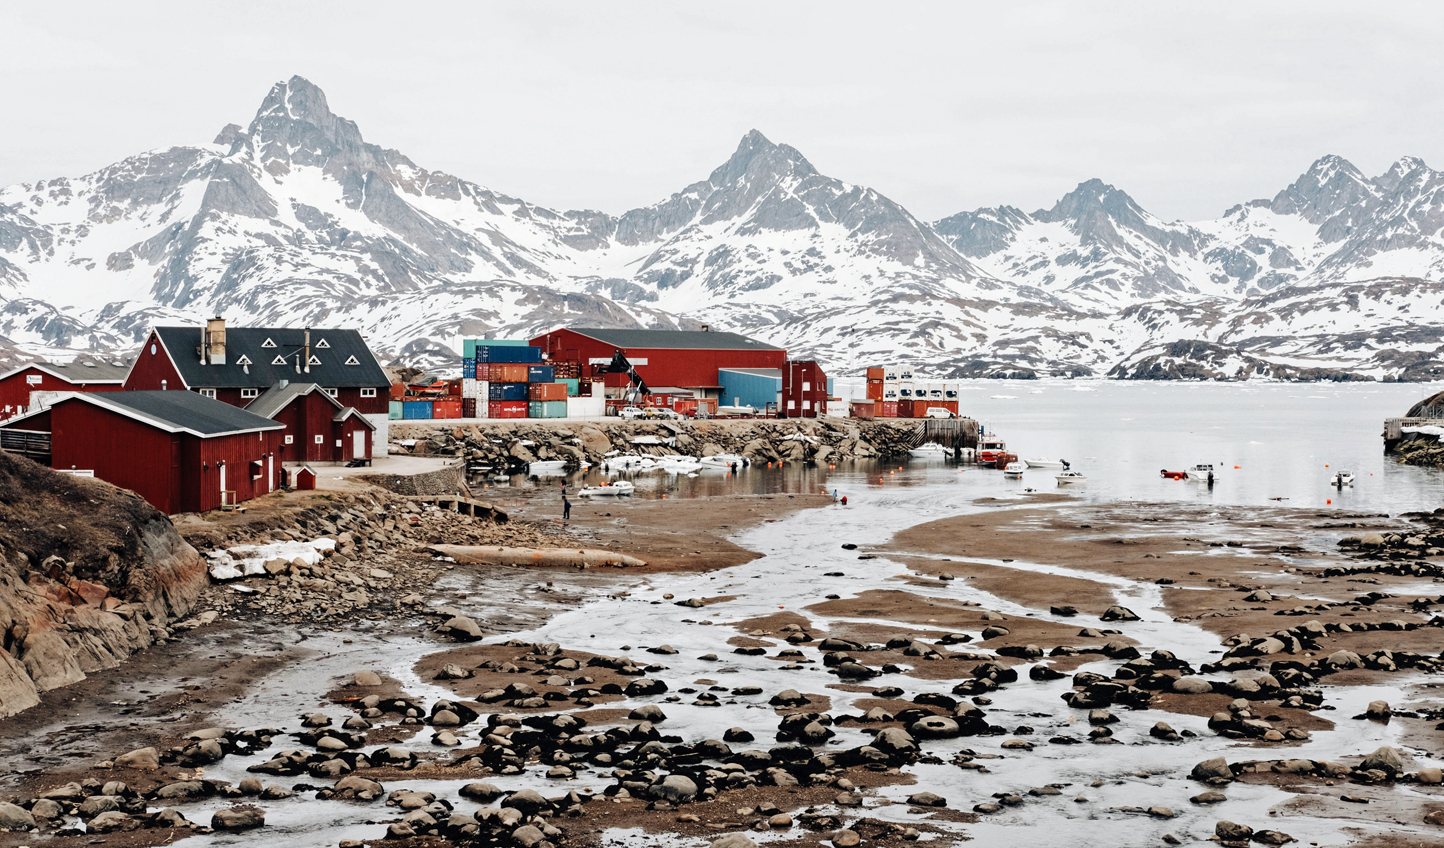 Enjoy learning about local Greenlandic villages